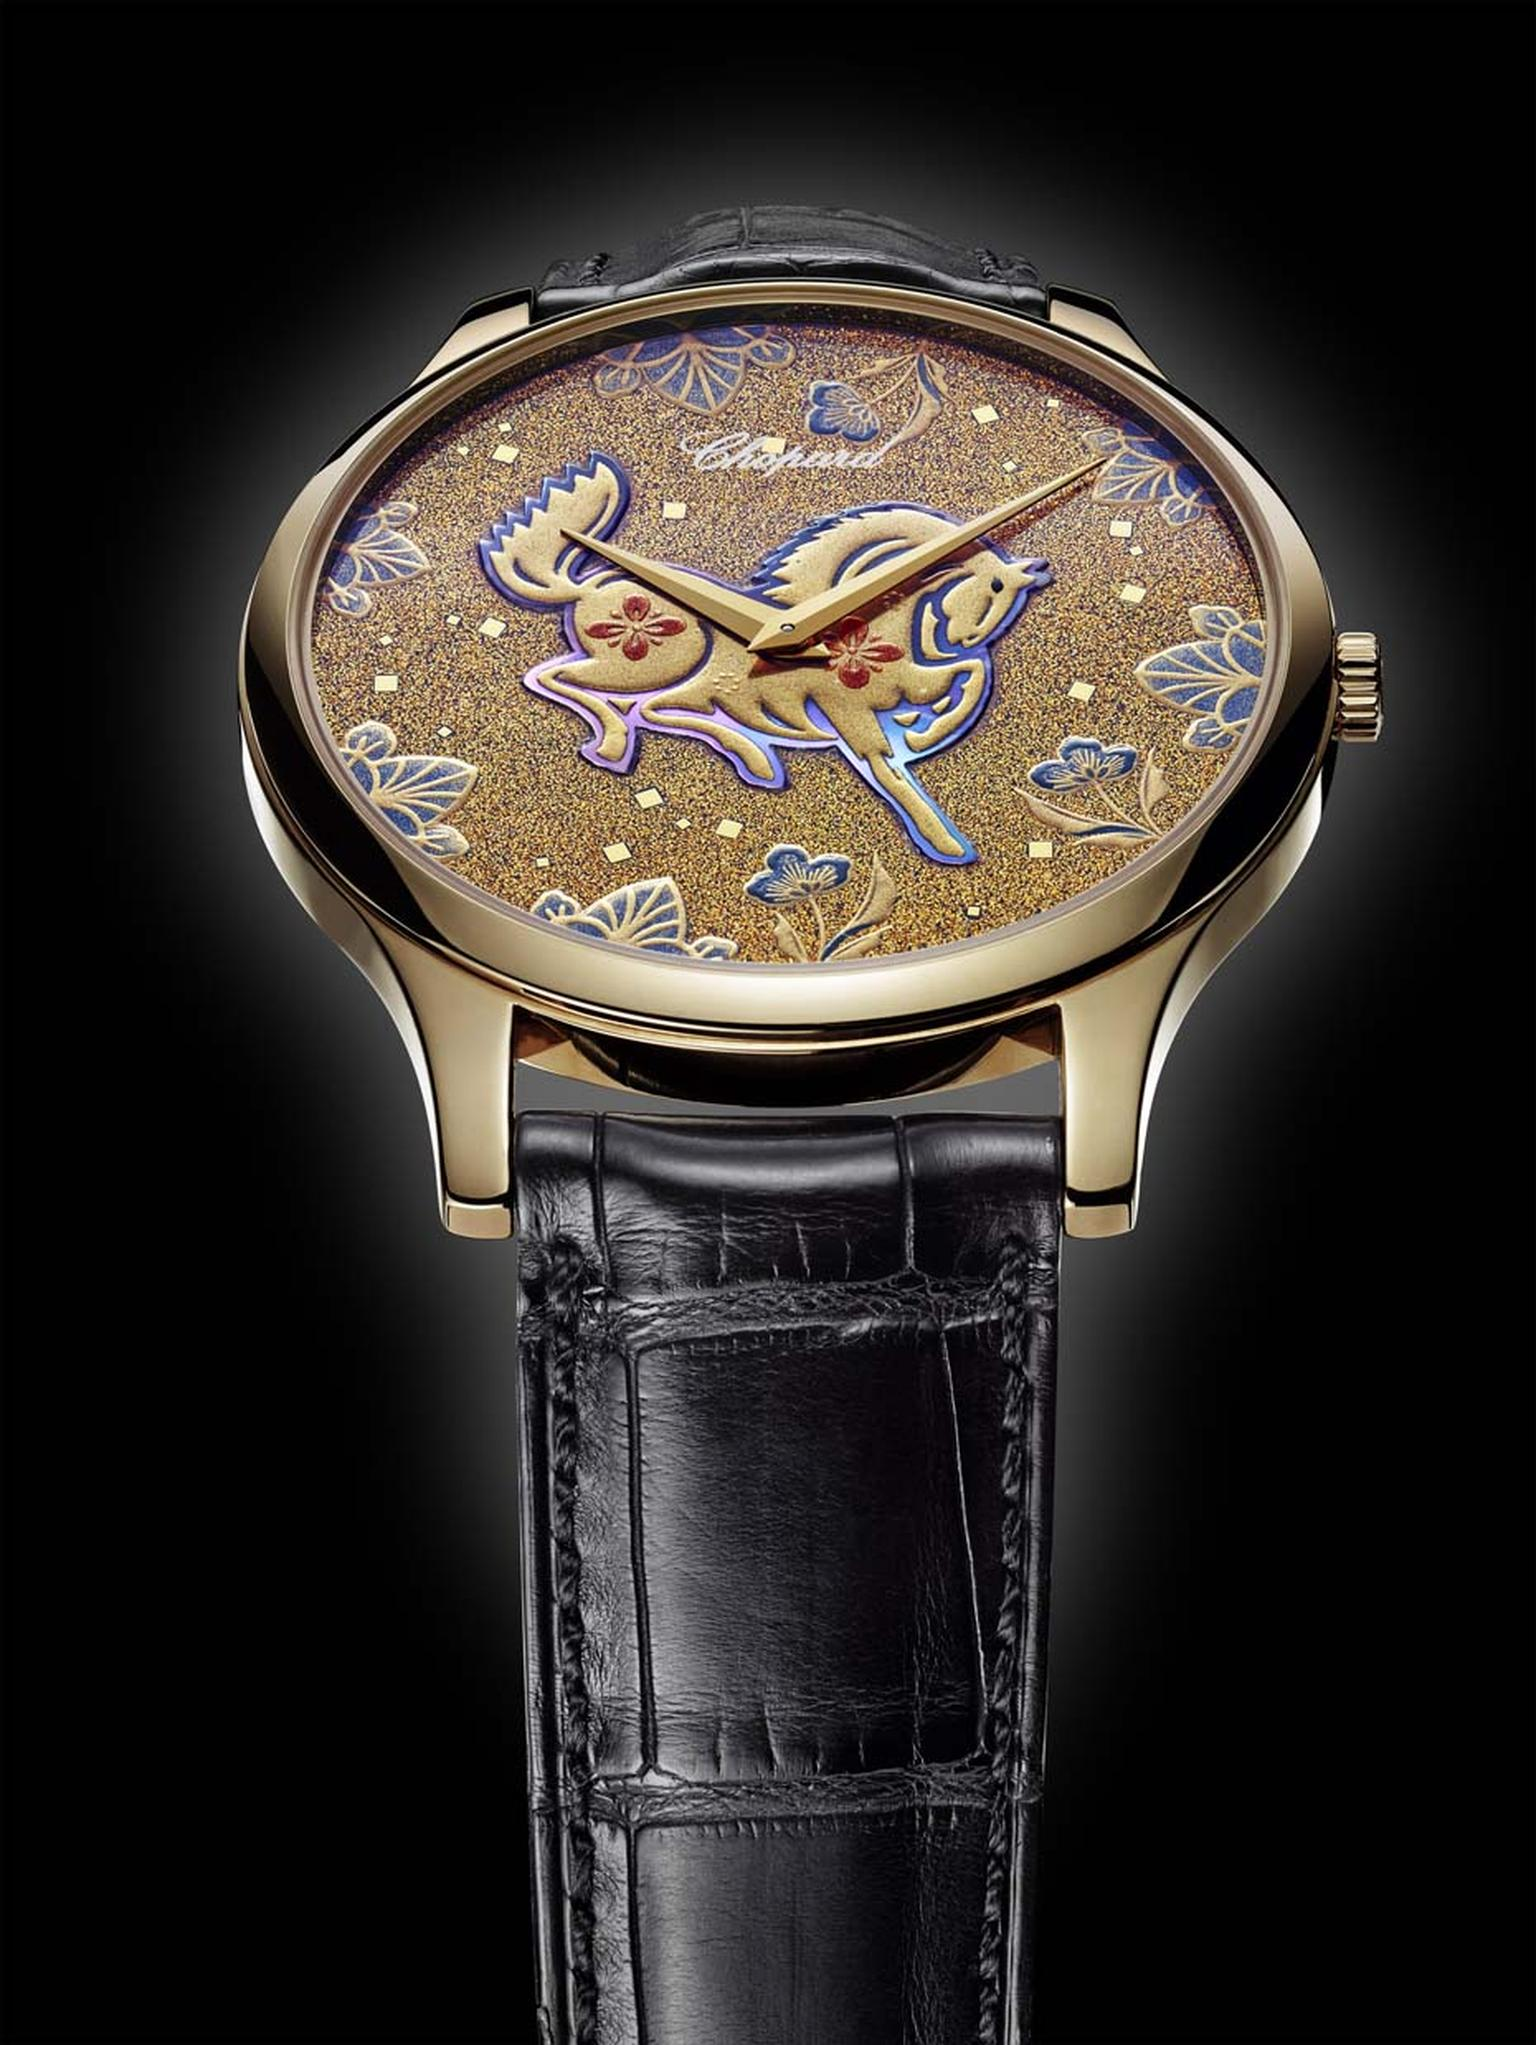 The dial of Chopard's L.U.X XP Urushi Year of the Horse timepiece was handcrafted using a technique called Make-e, which derives from the art of ancient Japanese lacquering called Urushi